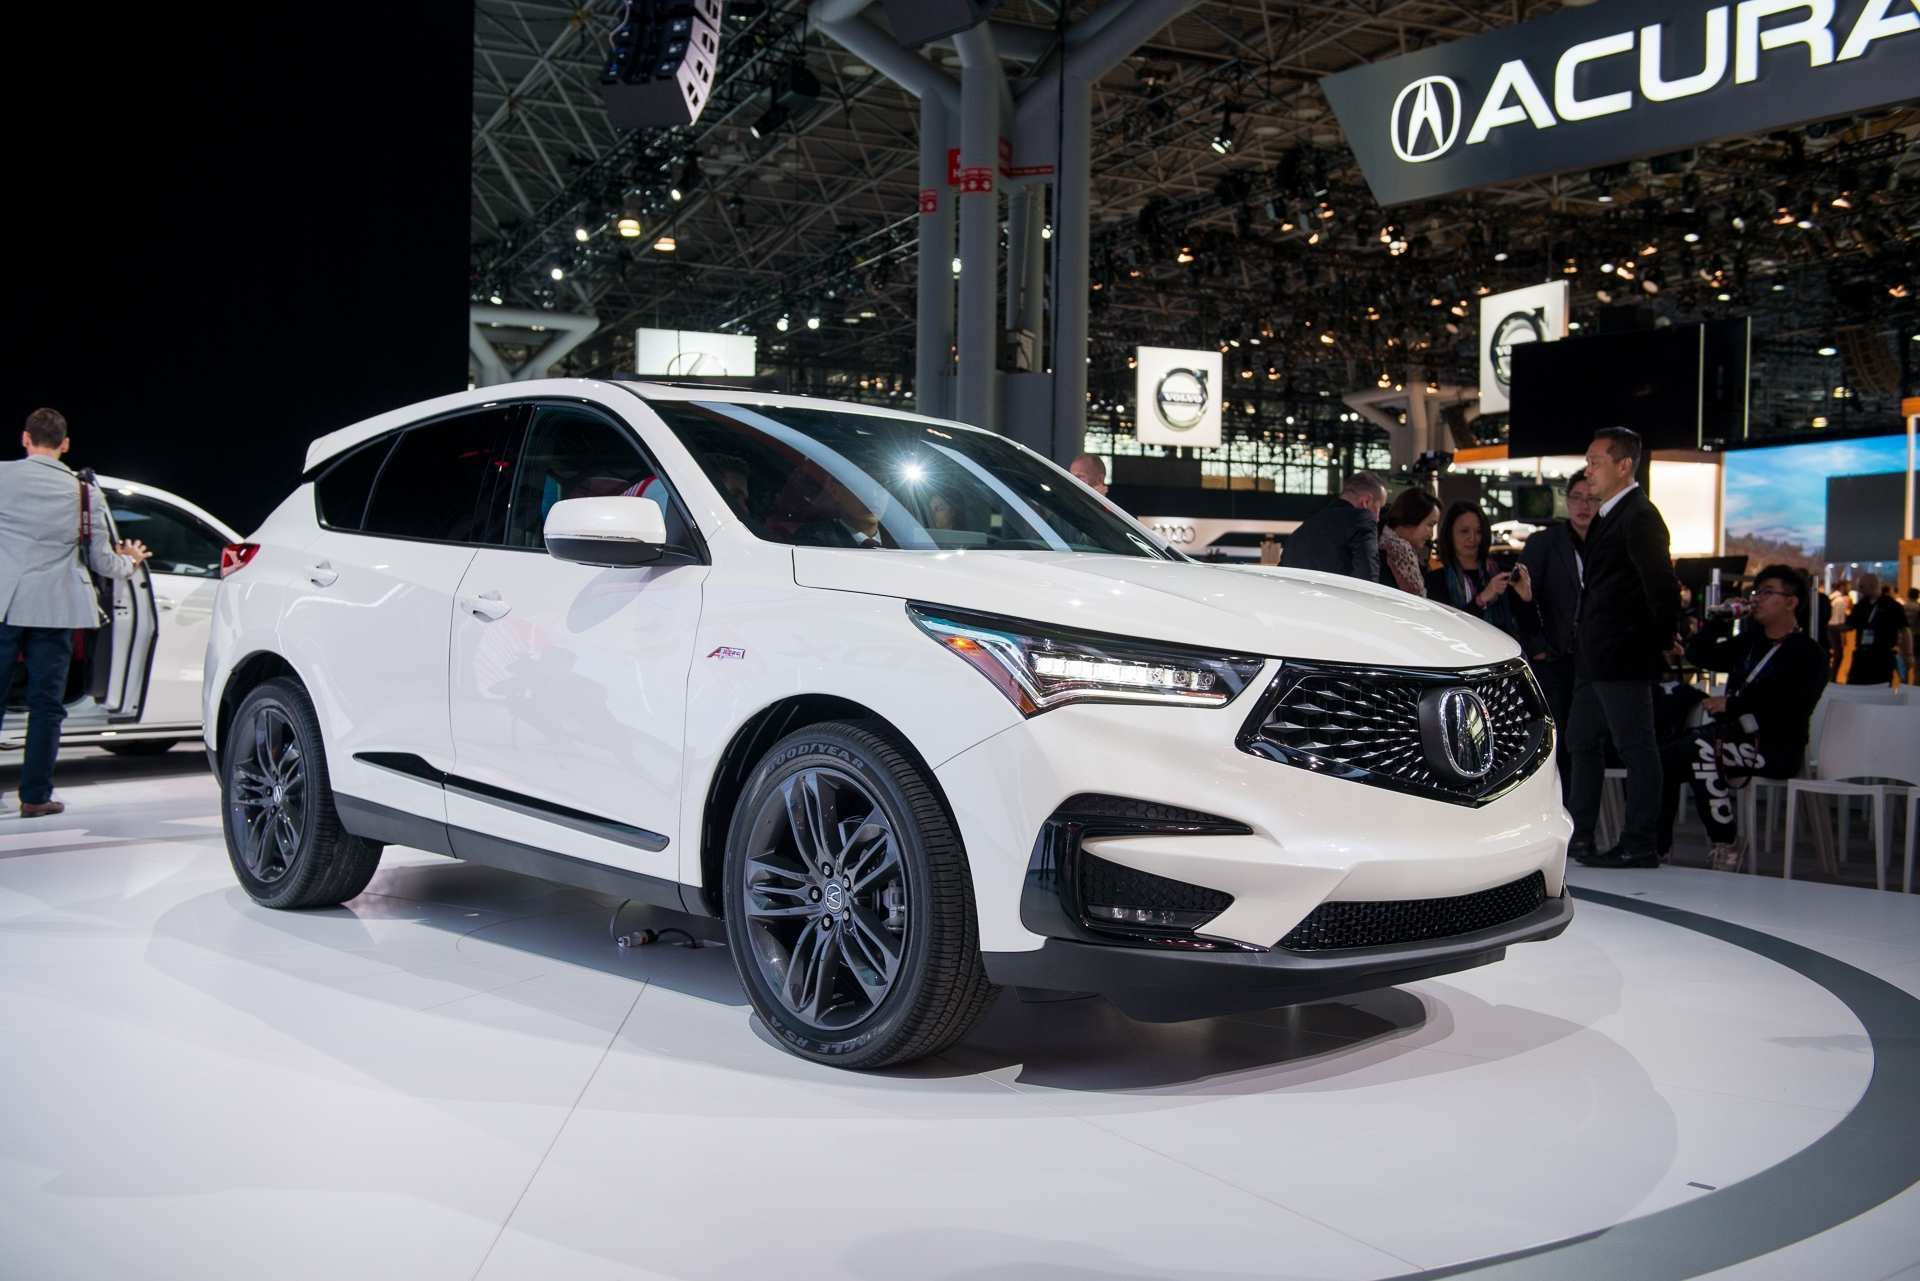 20 New Best Acura Wagon 2019 Specs New Review with Best Acura Wagon 2019 Specs